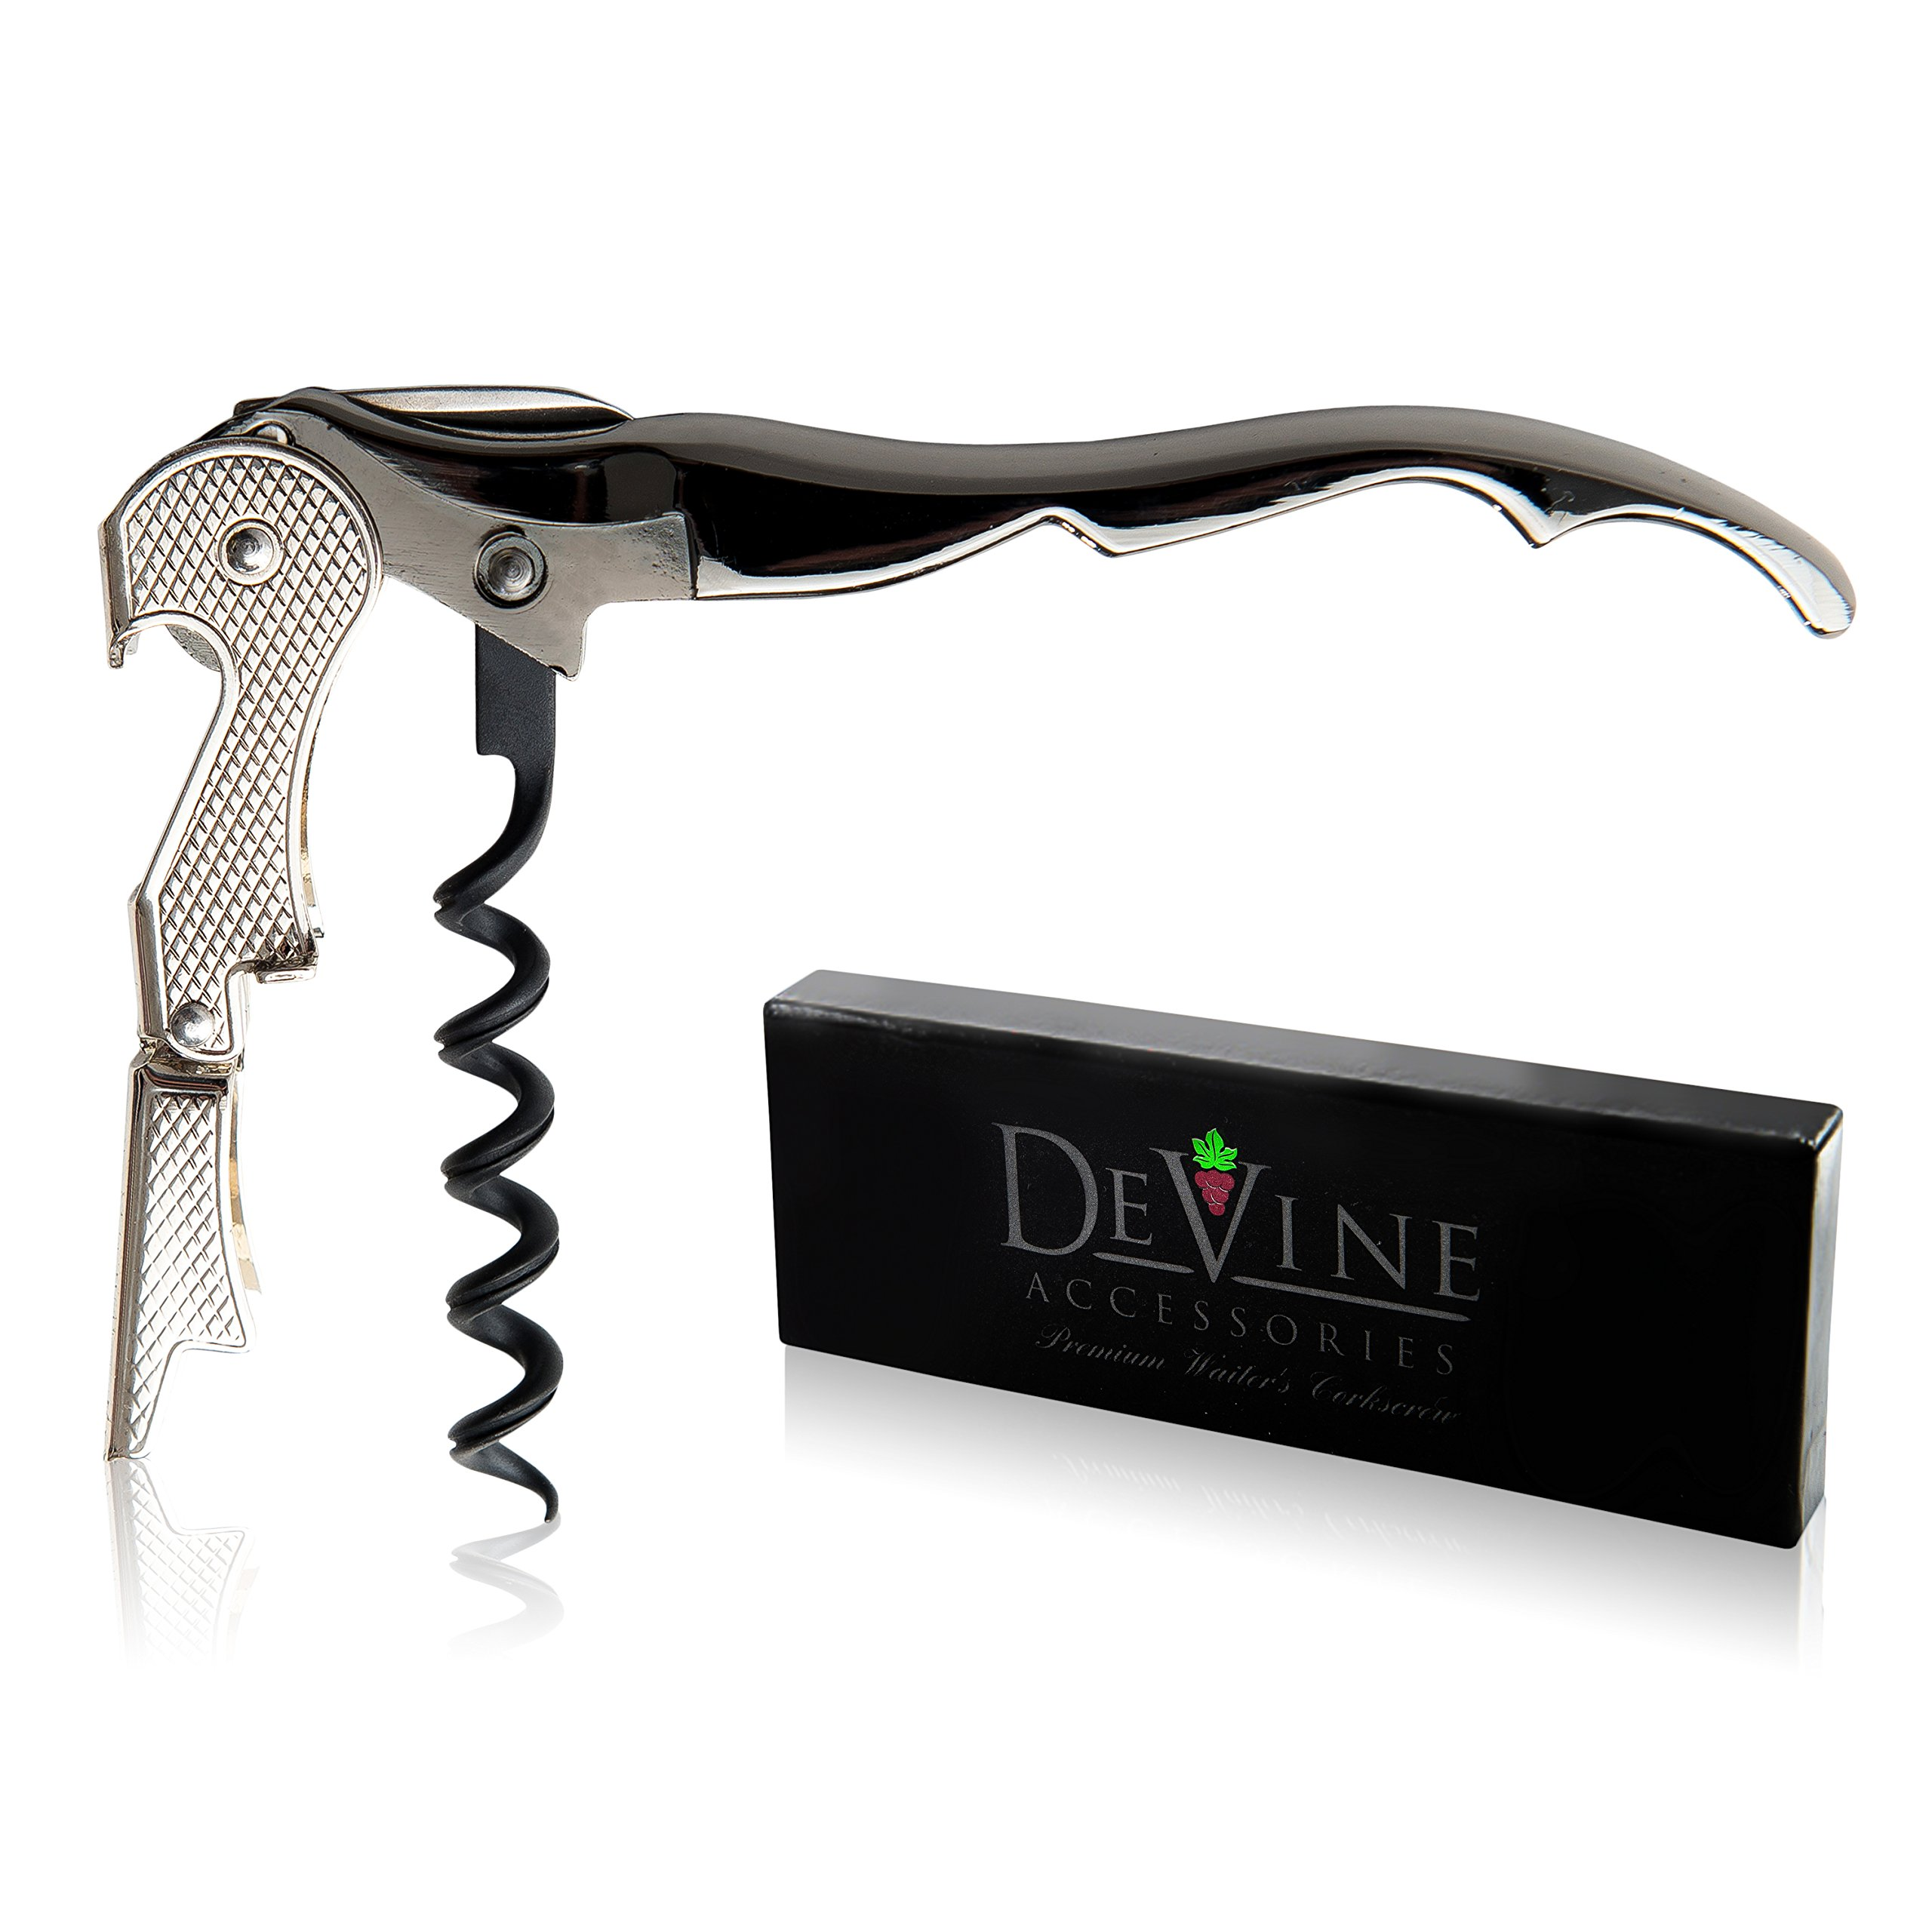 Premium Waiter's Corkscrew – Professional Grade Handheld Wine and Bottle Opener with Metalic Handle, Double Hinged Lever and Foil Cutter - by DeVine Accessories by DeVine Accessories (Image #1)